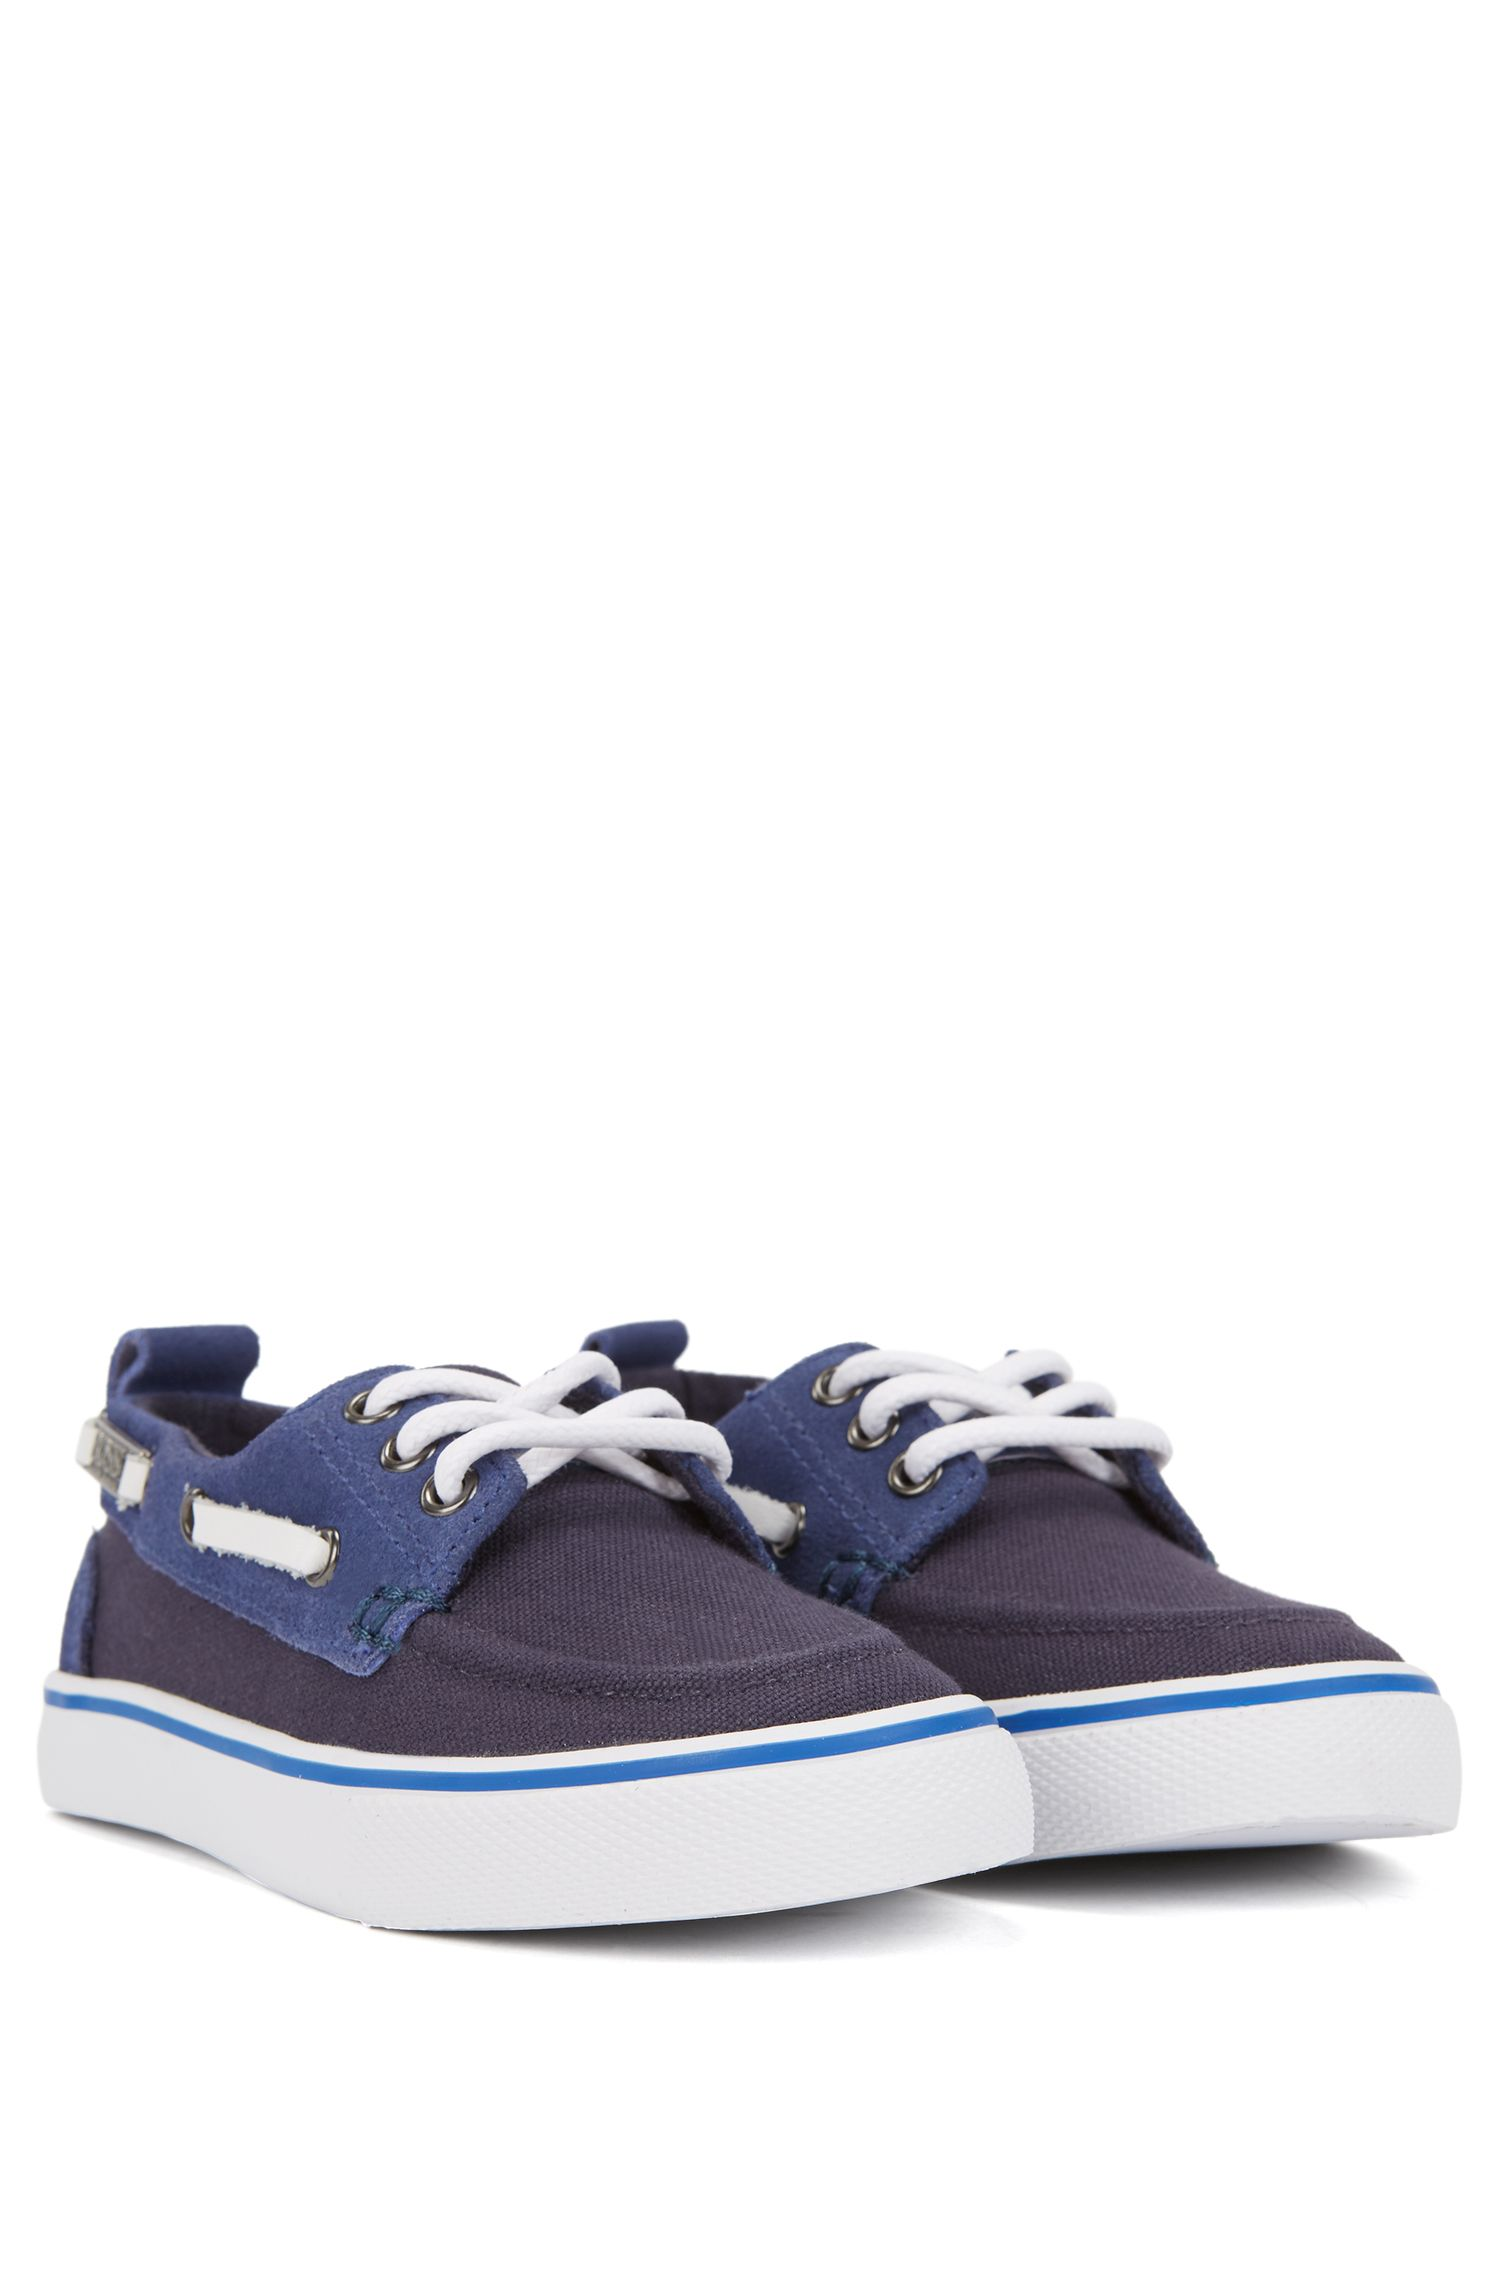 Kids' boat shoes in cotton canvas